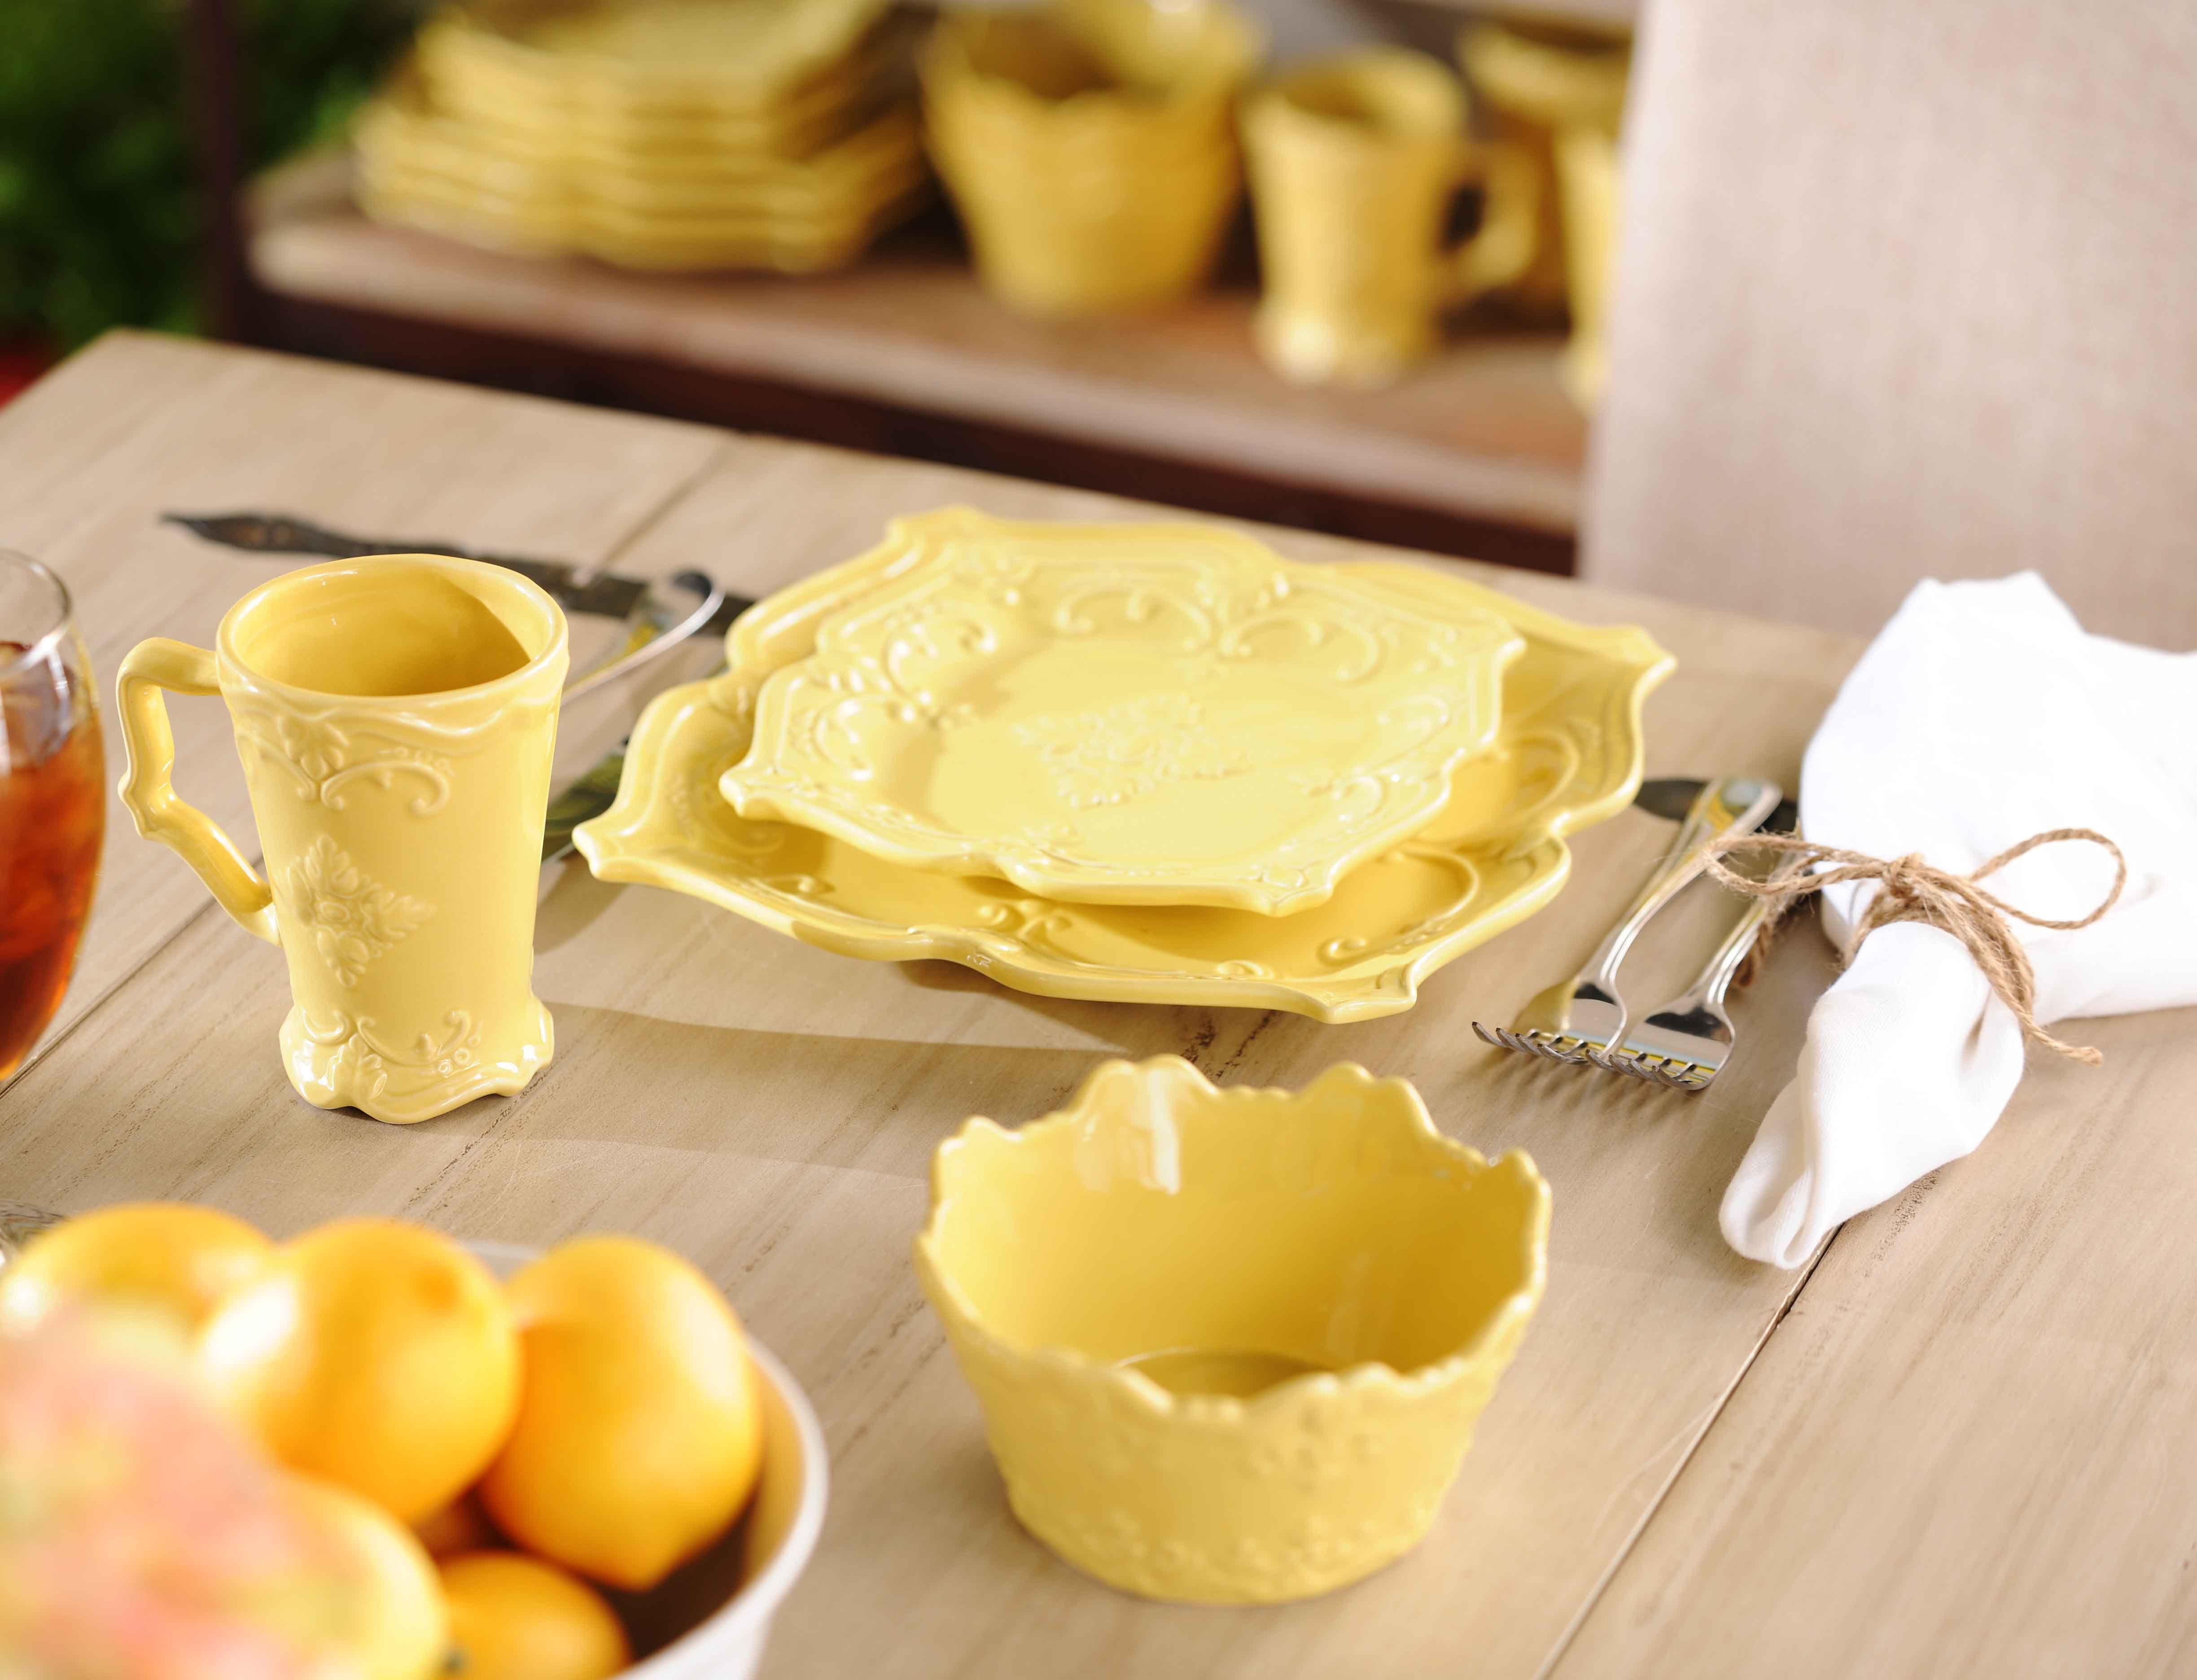 Add a touch of color to your kitchen with the yellow sweet olive dinnerware #kirklands & Add a touch of color to your kitchen with the yellow sweet olive ...